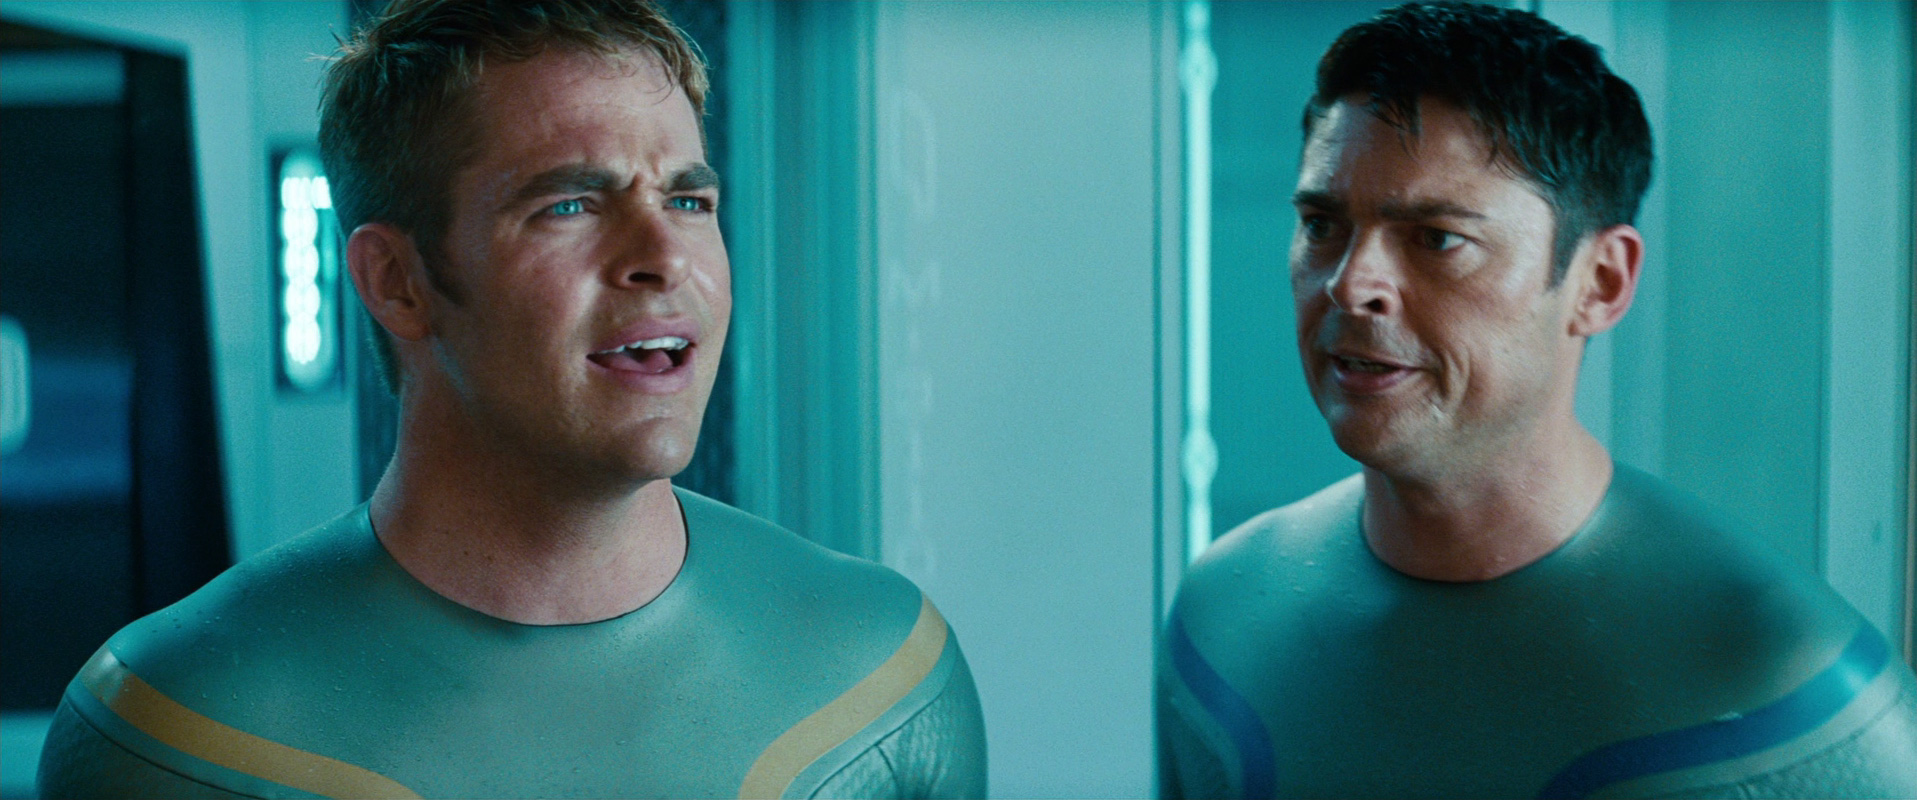 star-trek-into-darkness-hd-0242.jpg